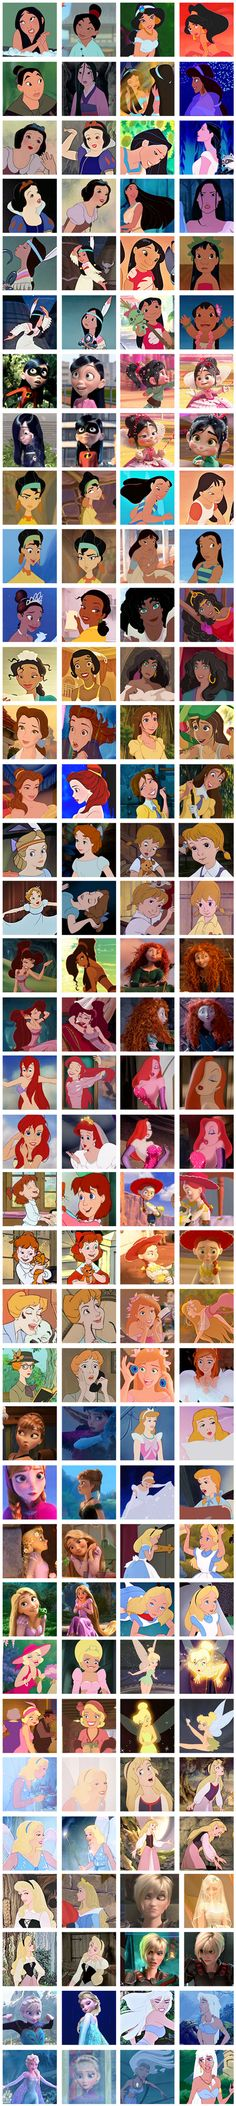 Disney girls sorted by hair color!